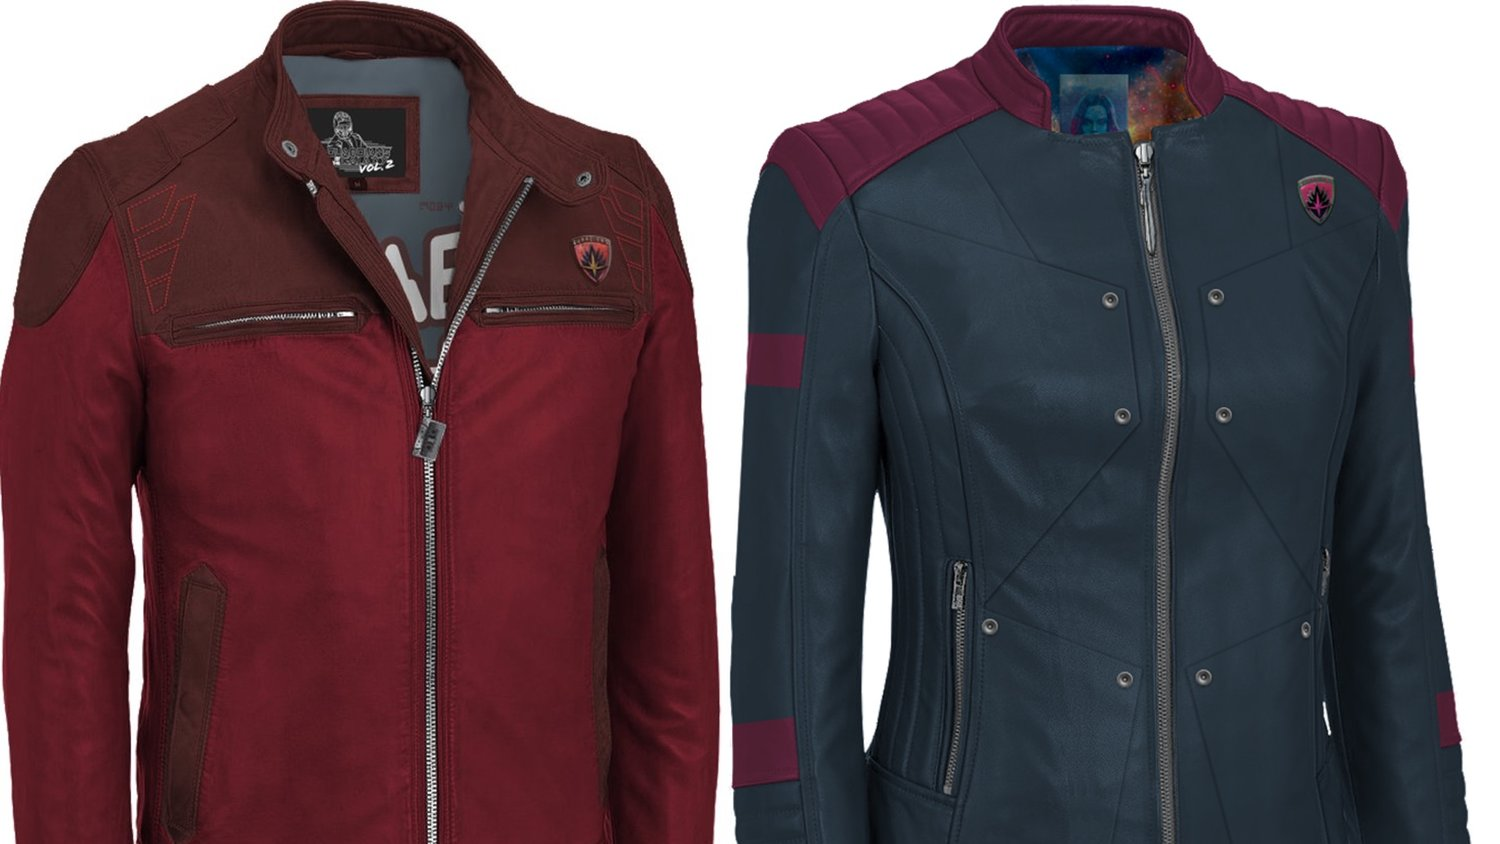 Official GUARDIANS OF THE GALAXY VOL. 2 Star-Lord and Gamora Jackets